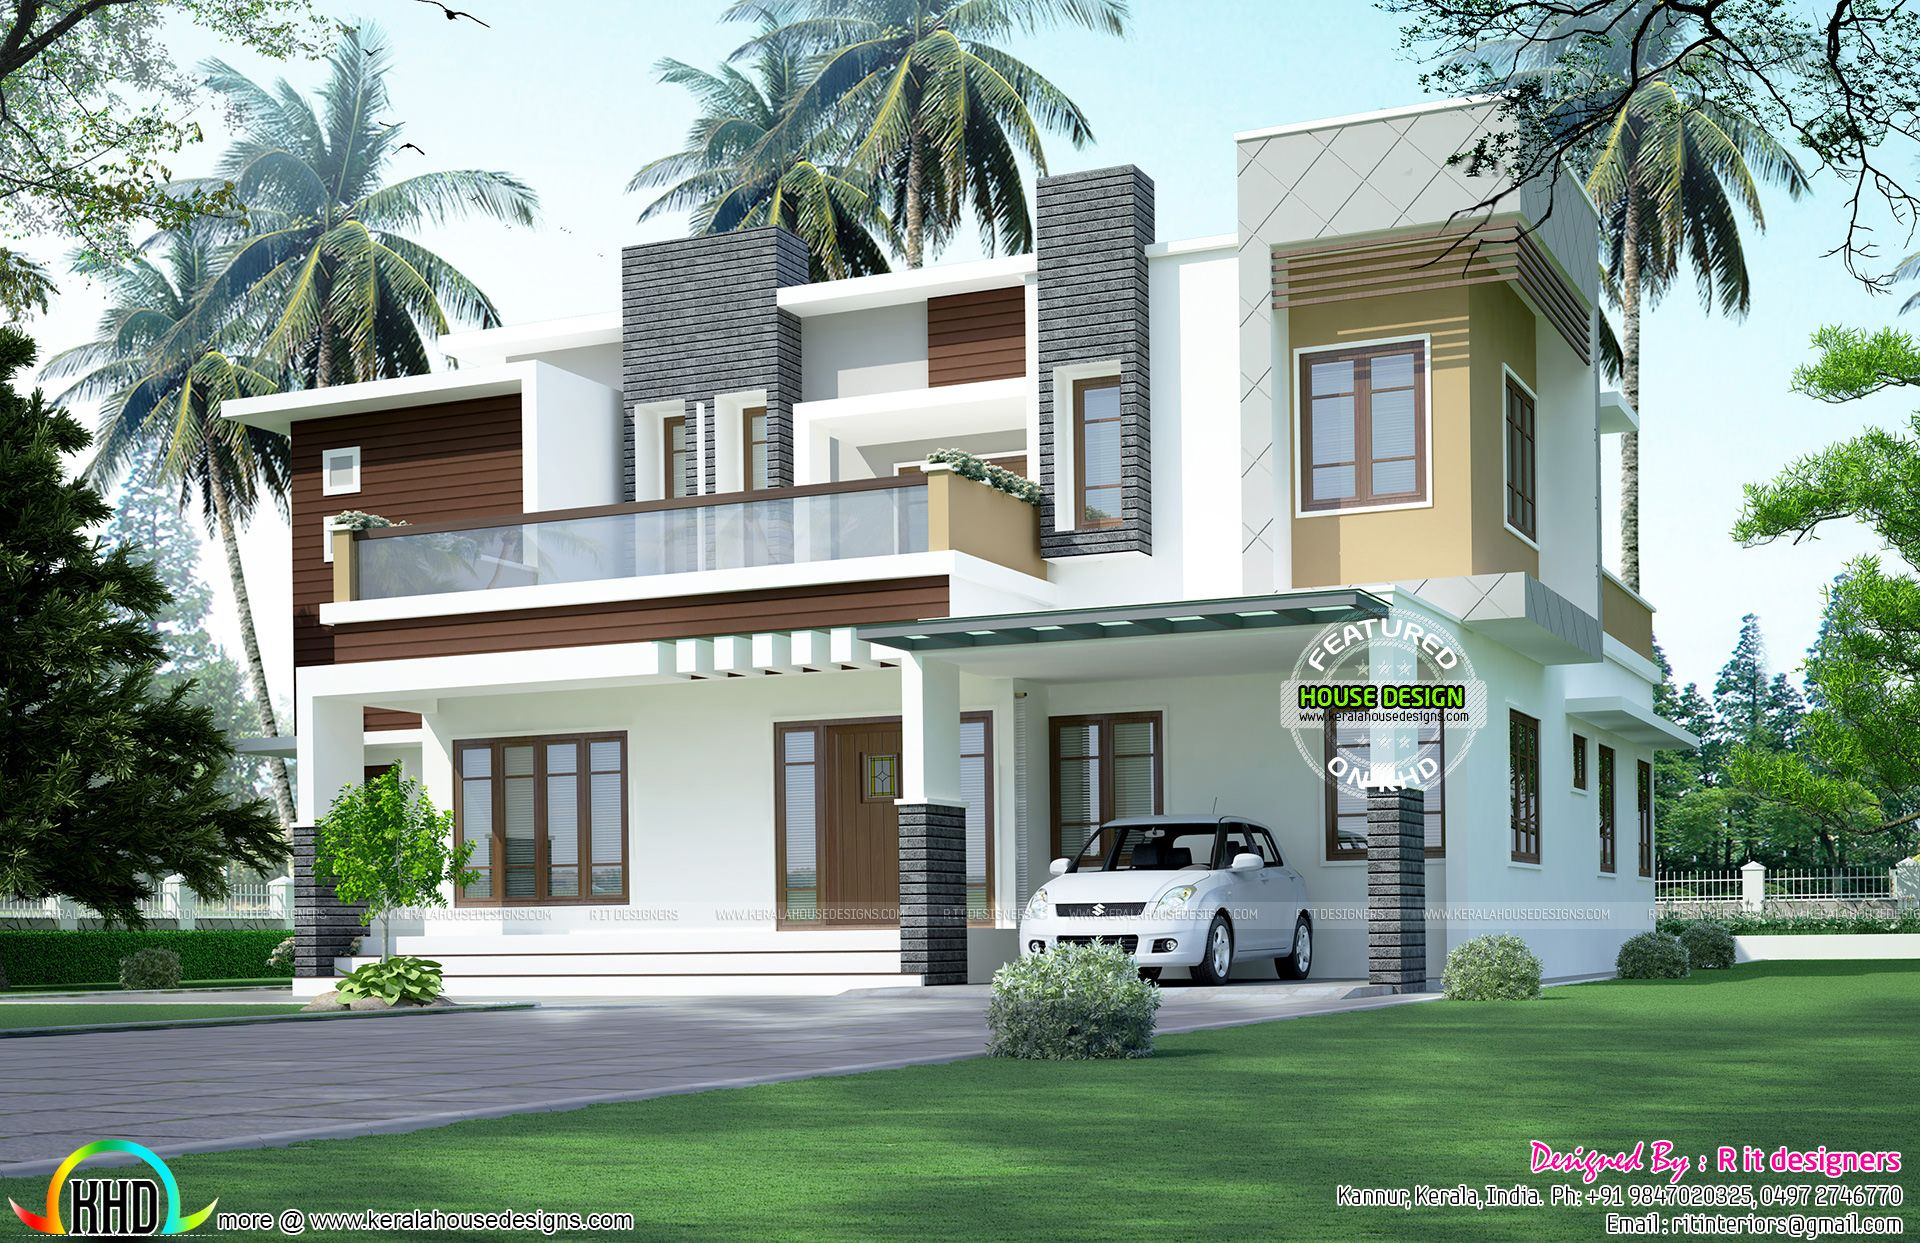 High Quality 3096 Square Feet, 3 Bedroom Box Model Contemporary Modern House Plan By R  It Designers, Kannur, Kerala.